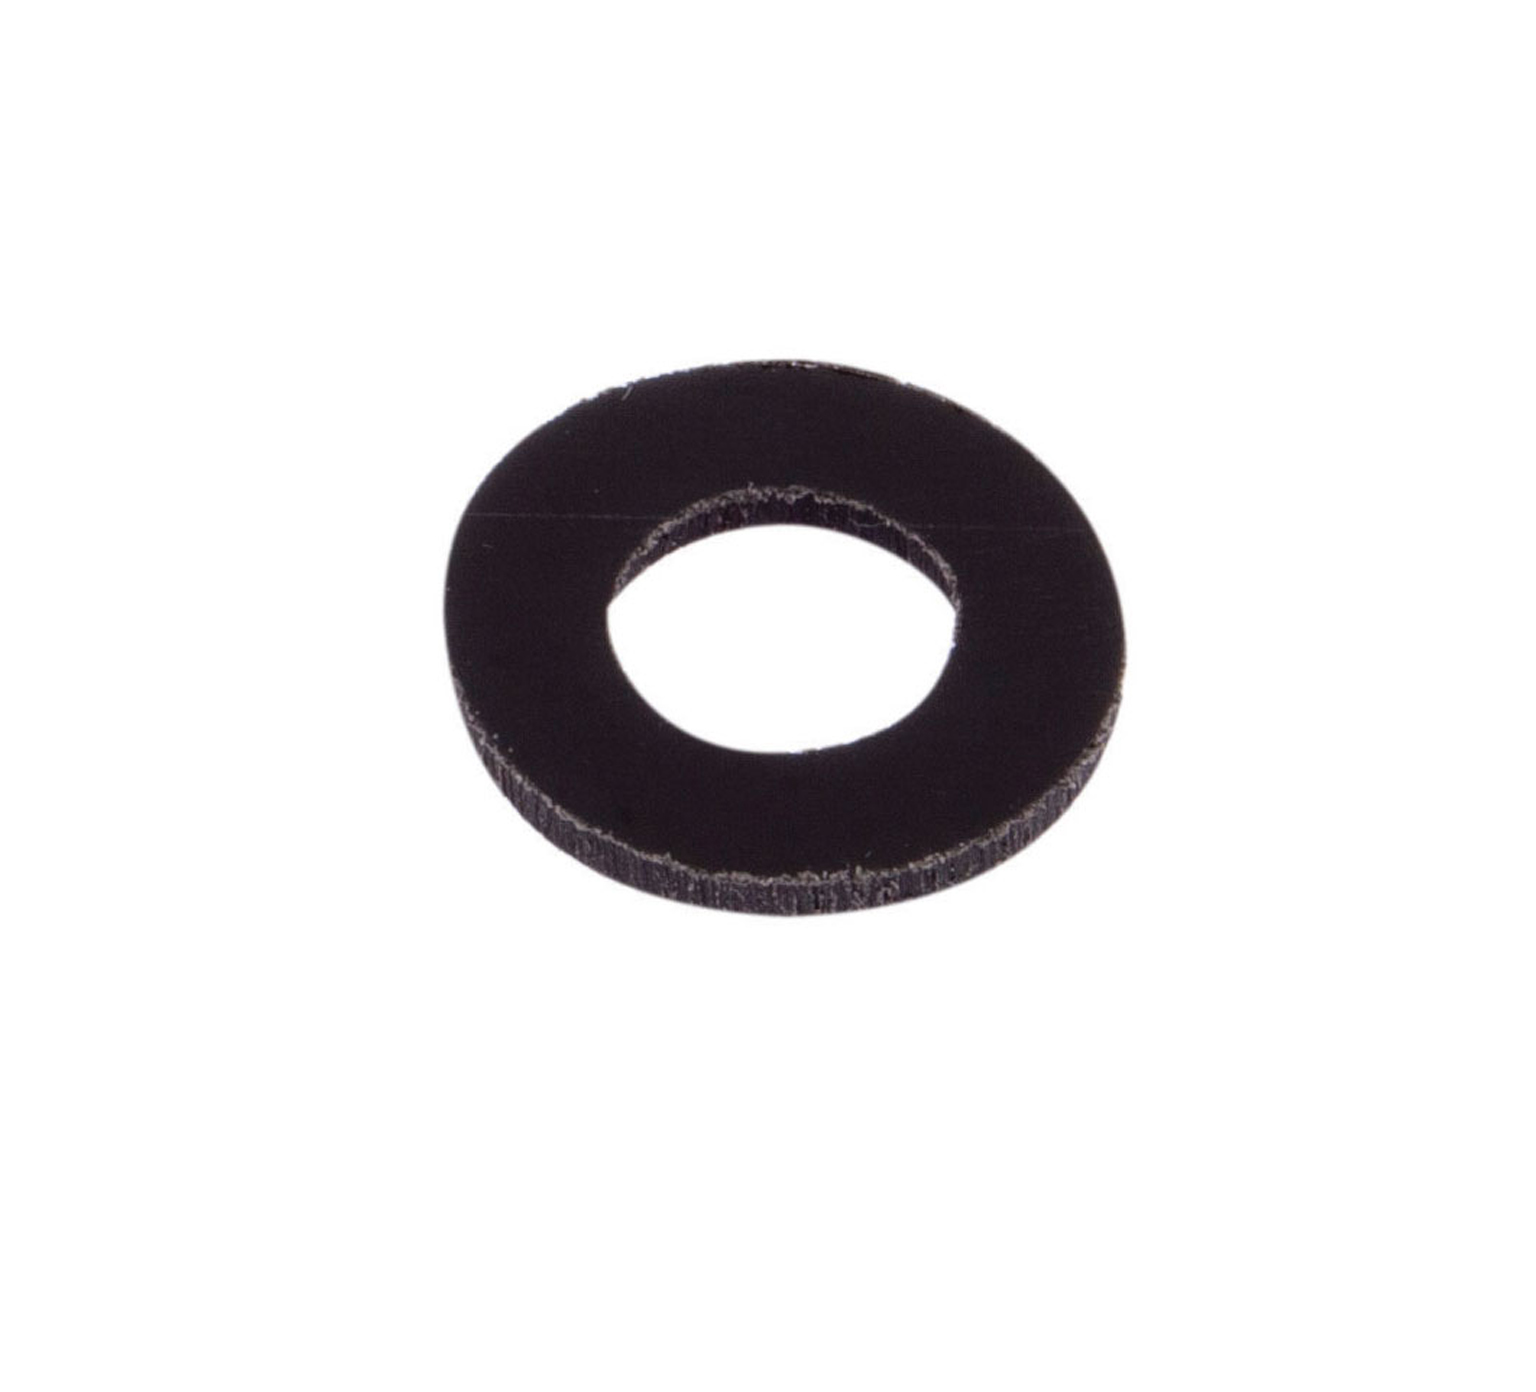 32713 Urethane Flat Washer - 0.812 x 0.093 in alt 1